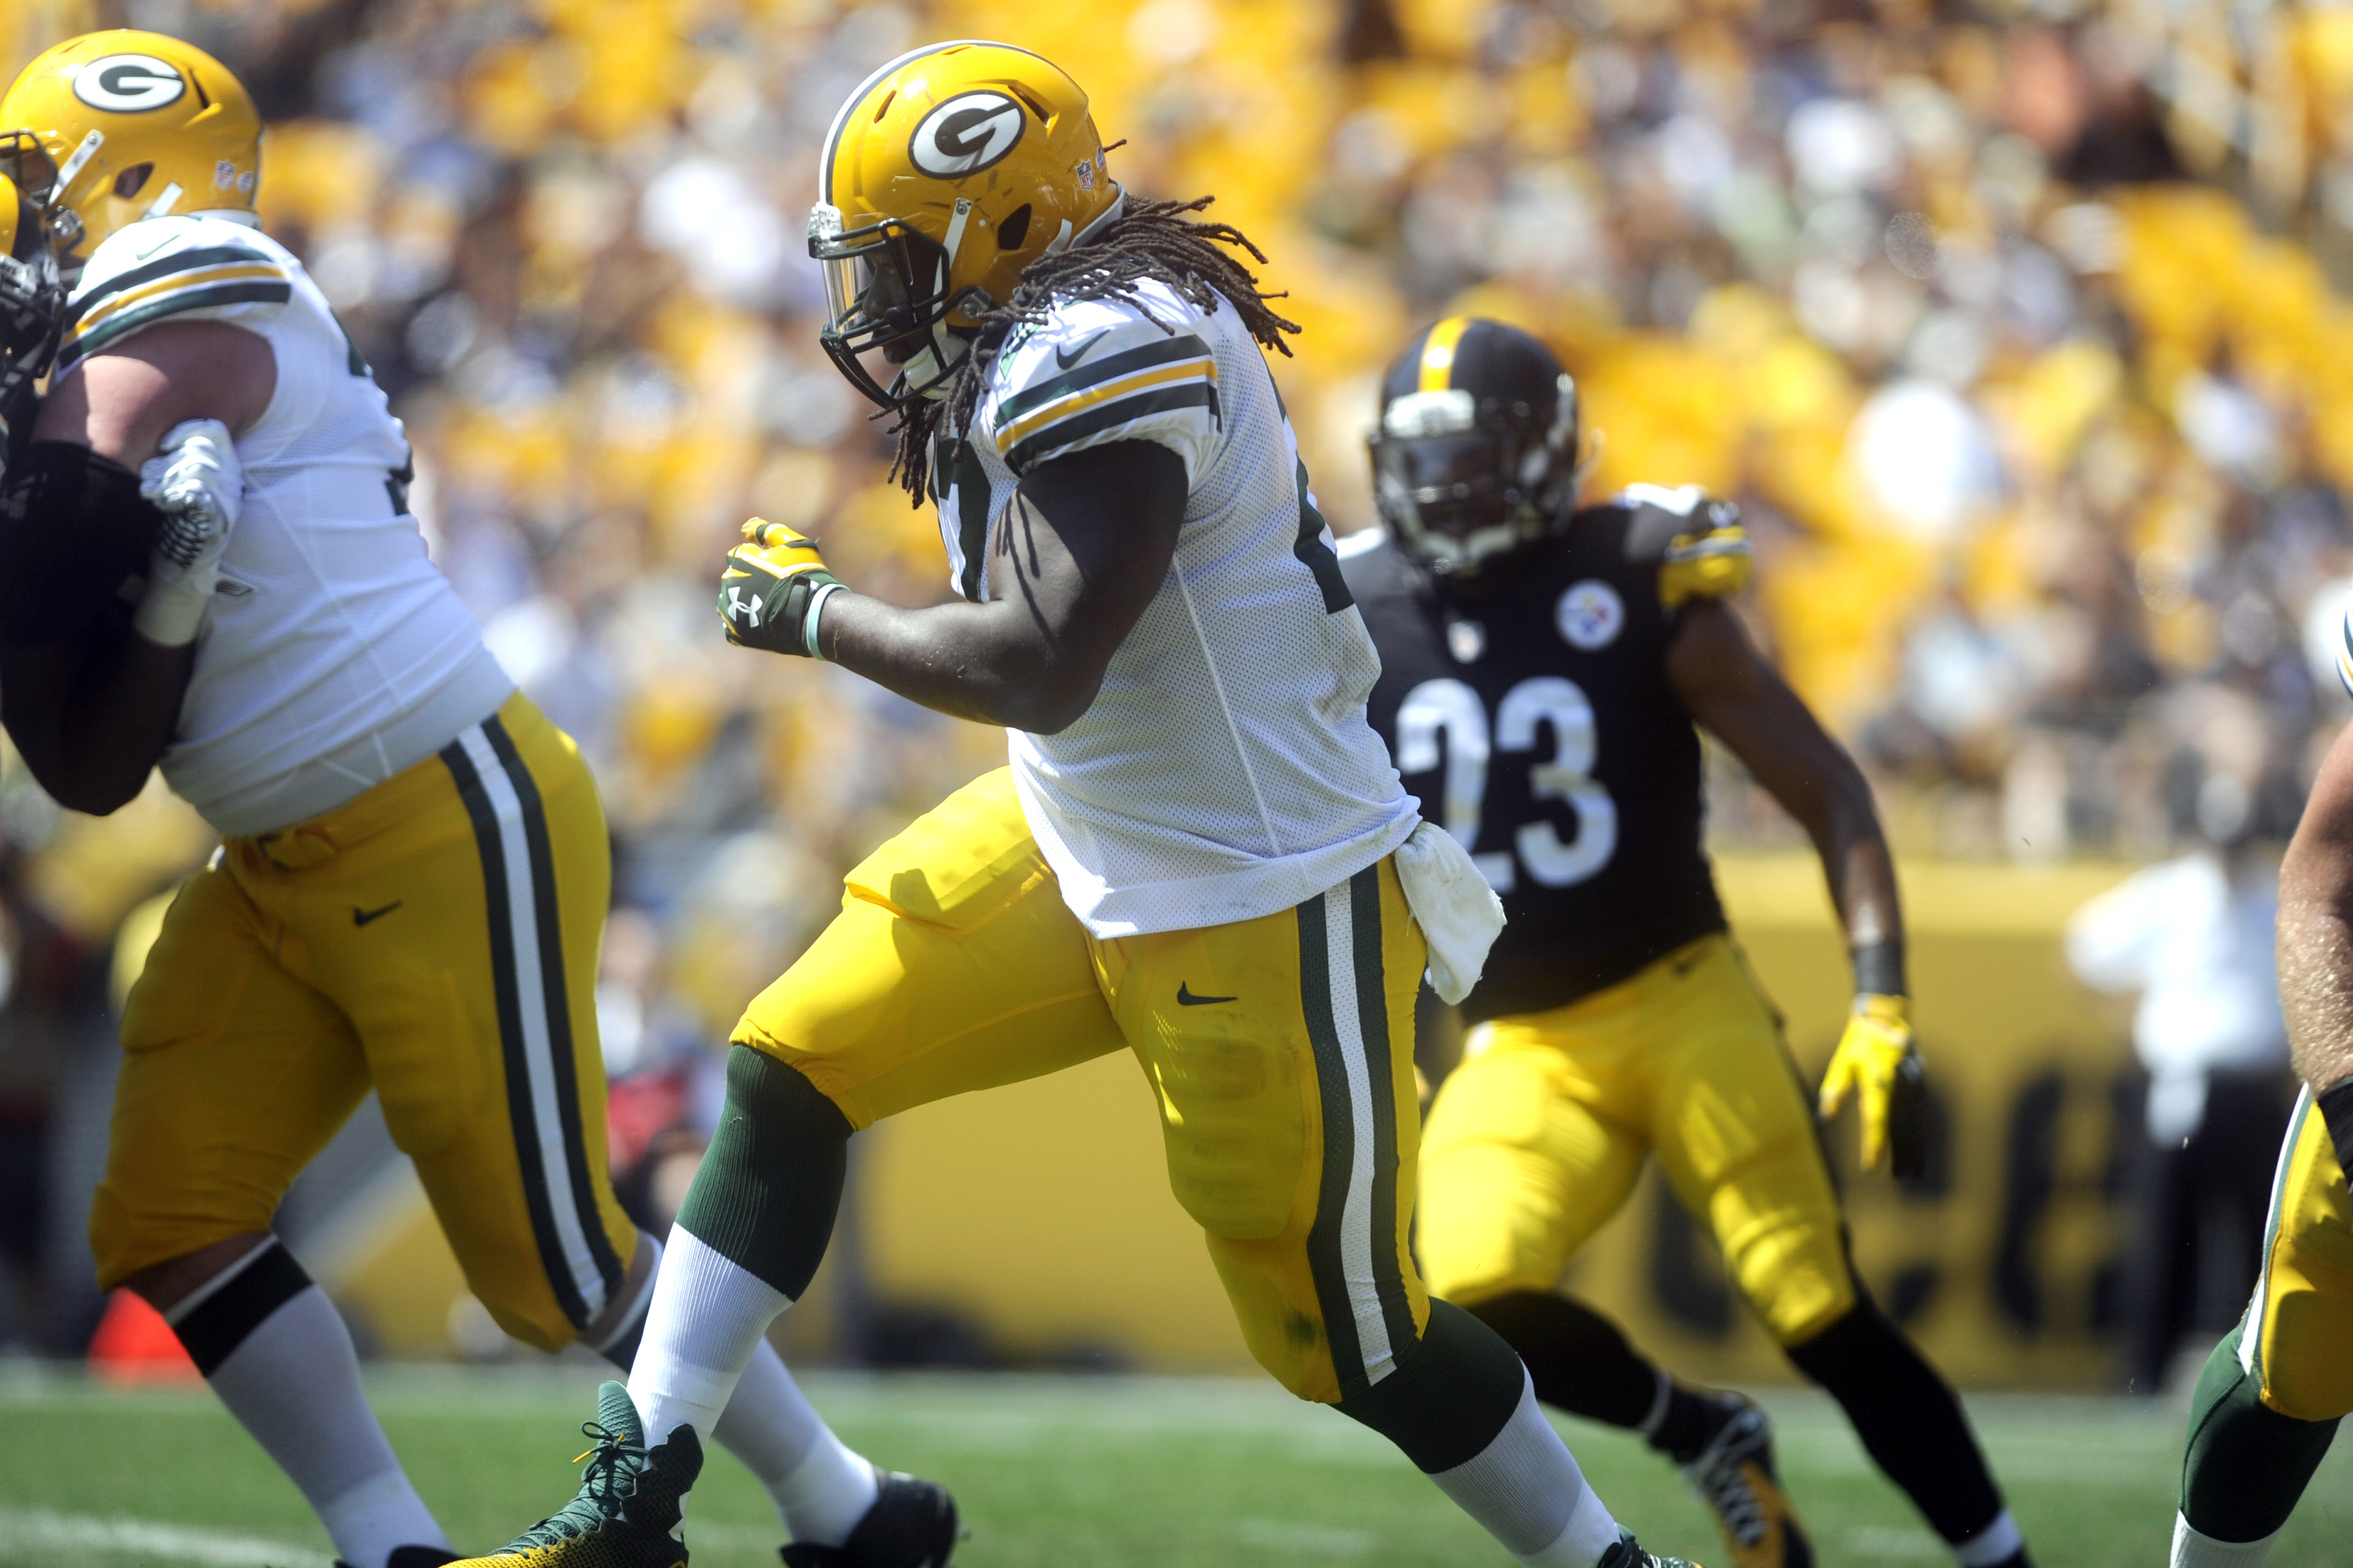 CORRECTS DAY OF THE WEEK TO SUNDAY - Green Bay Packers running back Eddie Lacy (27) runs past Pittsburgh Steelers free safety Mike Mitchell (23) for a touchdown in the first quarter of the pre-seaon NFL football game, Sunday, Aug. 23, 2014 in Pittsburgh.